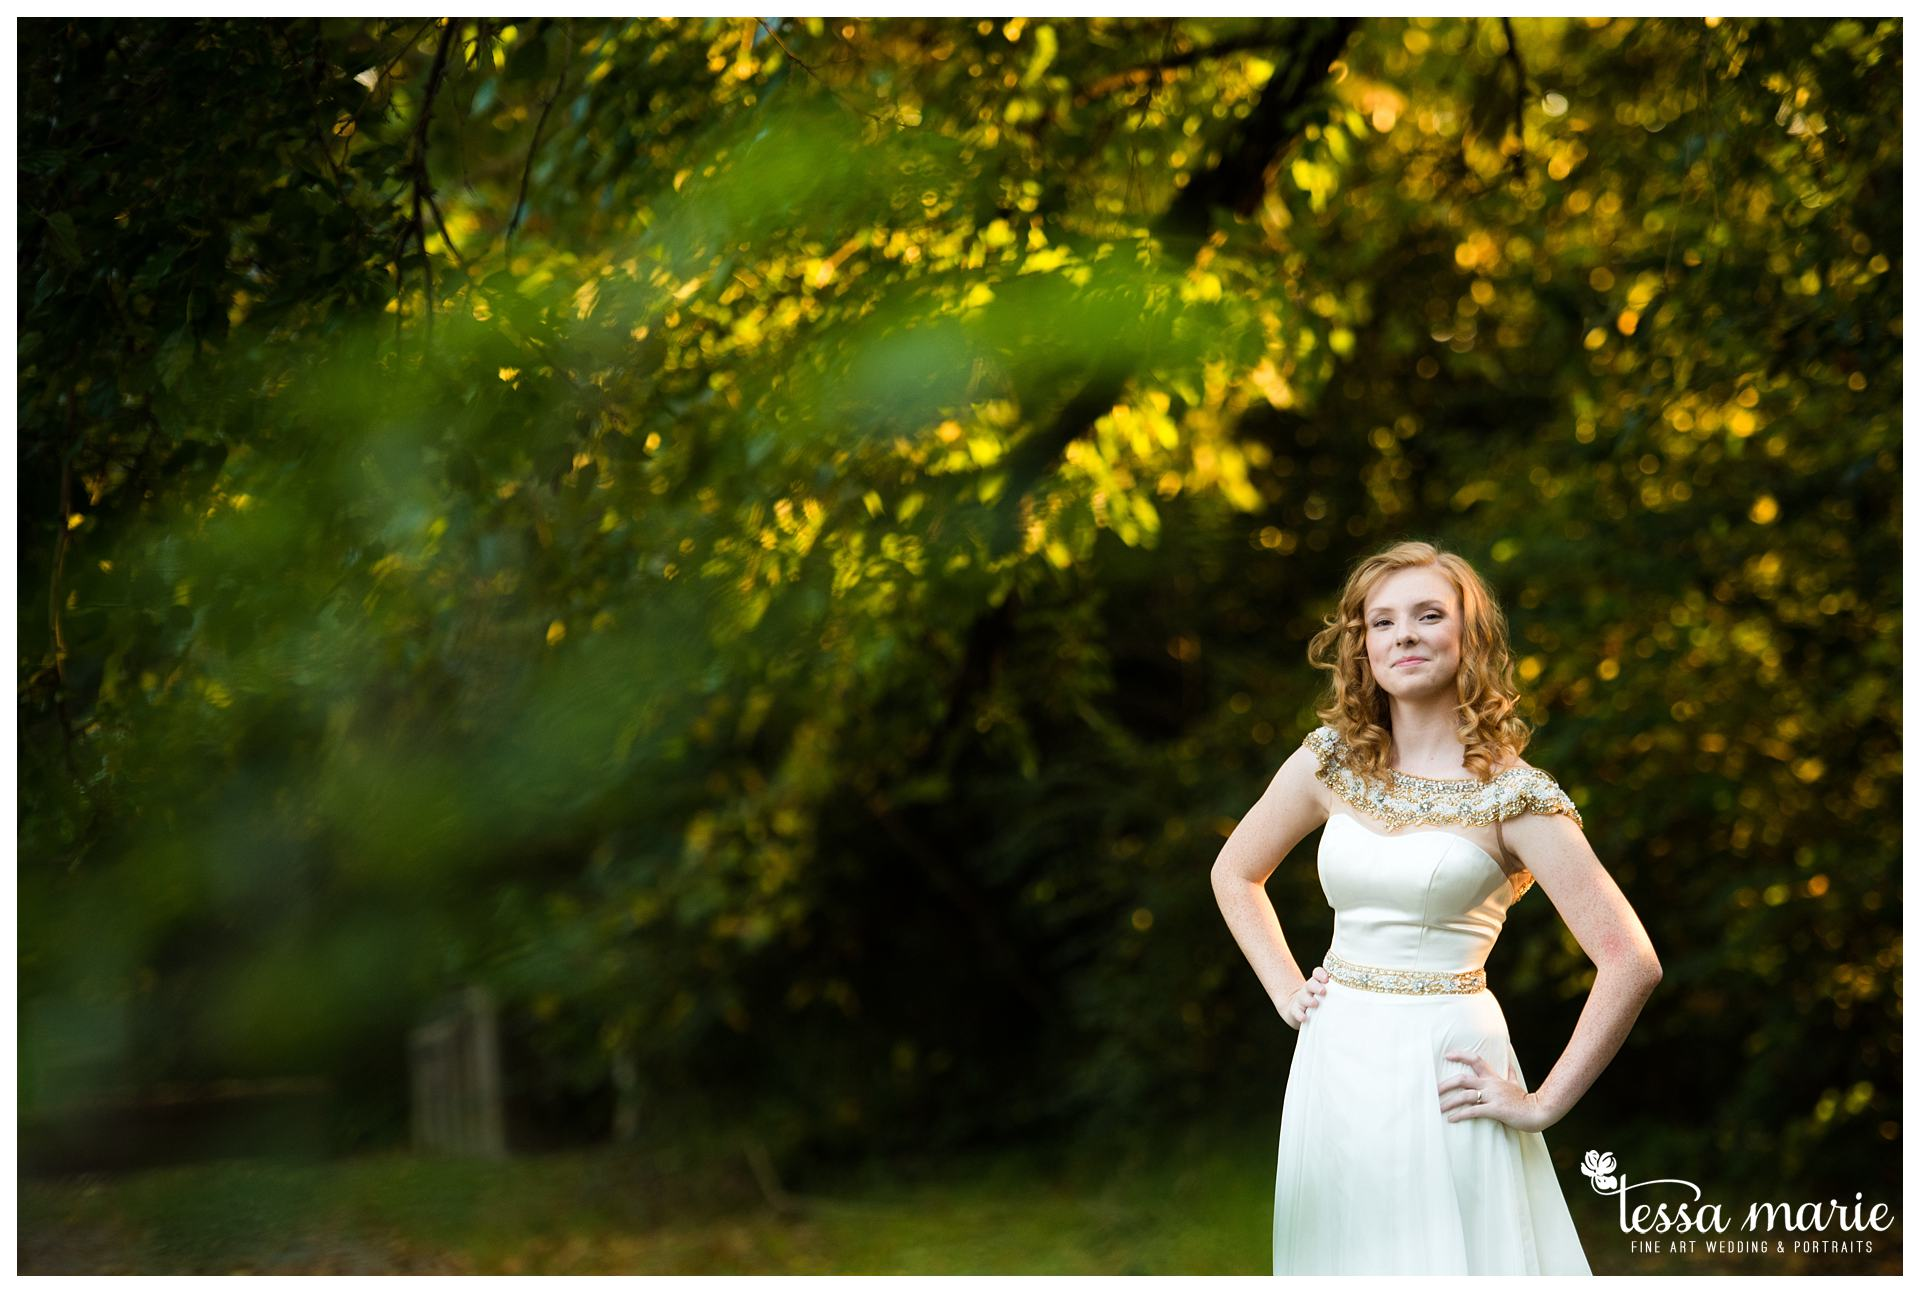 tessa_marie_weddings_legacy_story_focused_wedding_pictures_atlanta_wedding_photographer_family_pictures_portrait_Fine_art_memories_mothers_day_spring_moments_0332